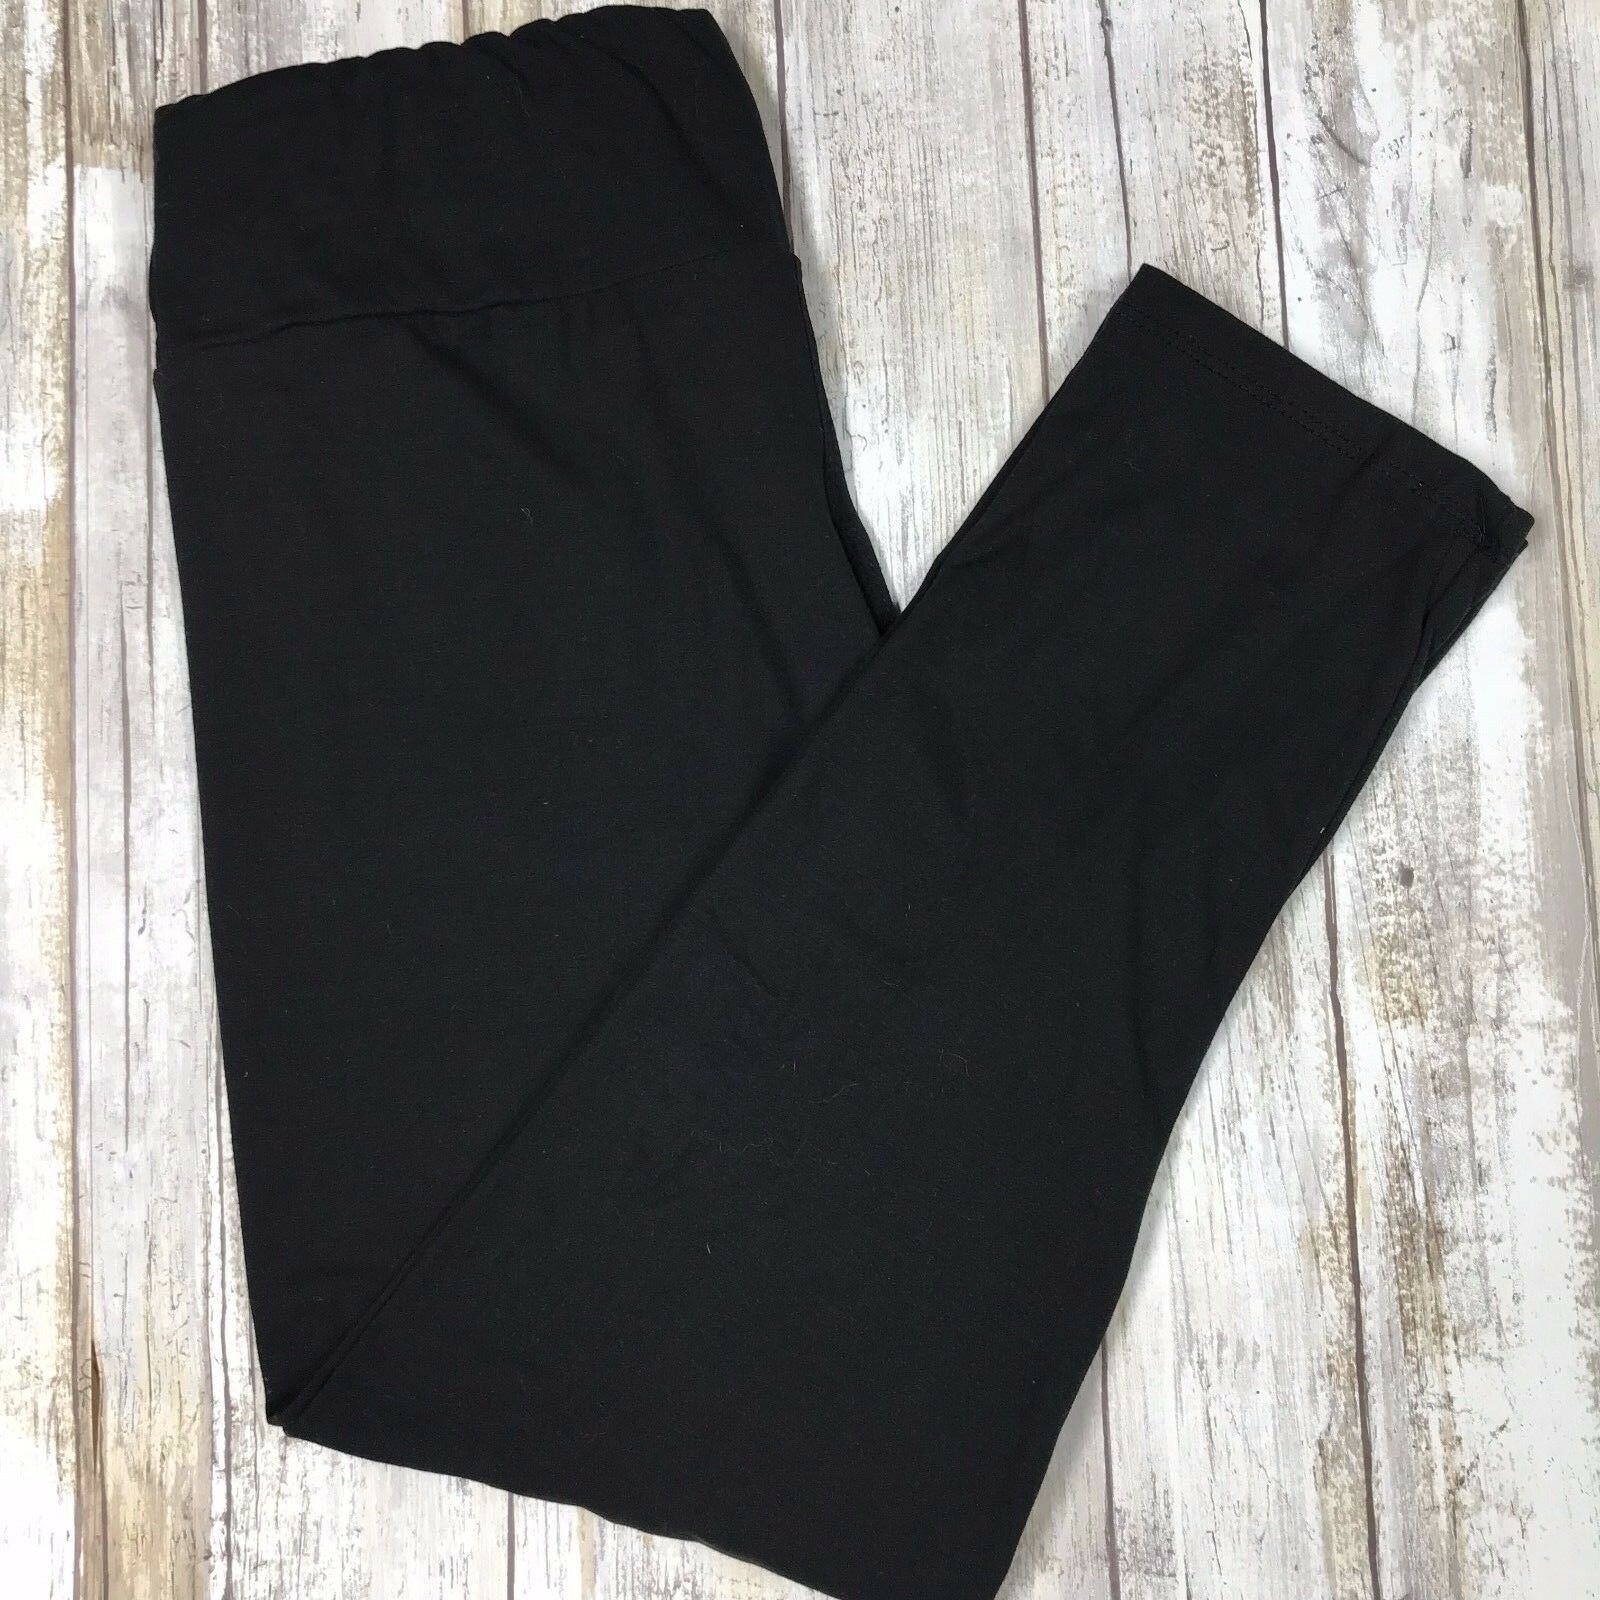 Leggings - Simply The Best Solid Black Leggings Butter Soft  OS TC Plus S/M L/XL Yoga Style